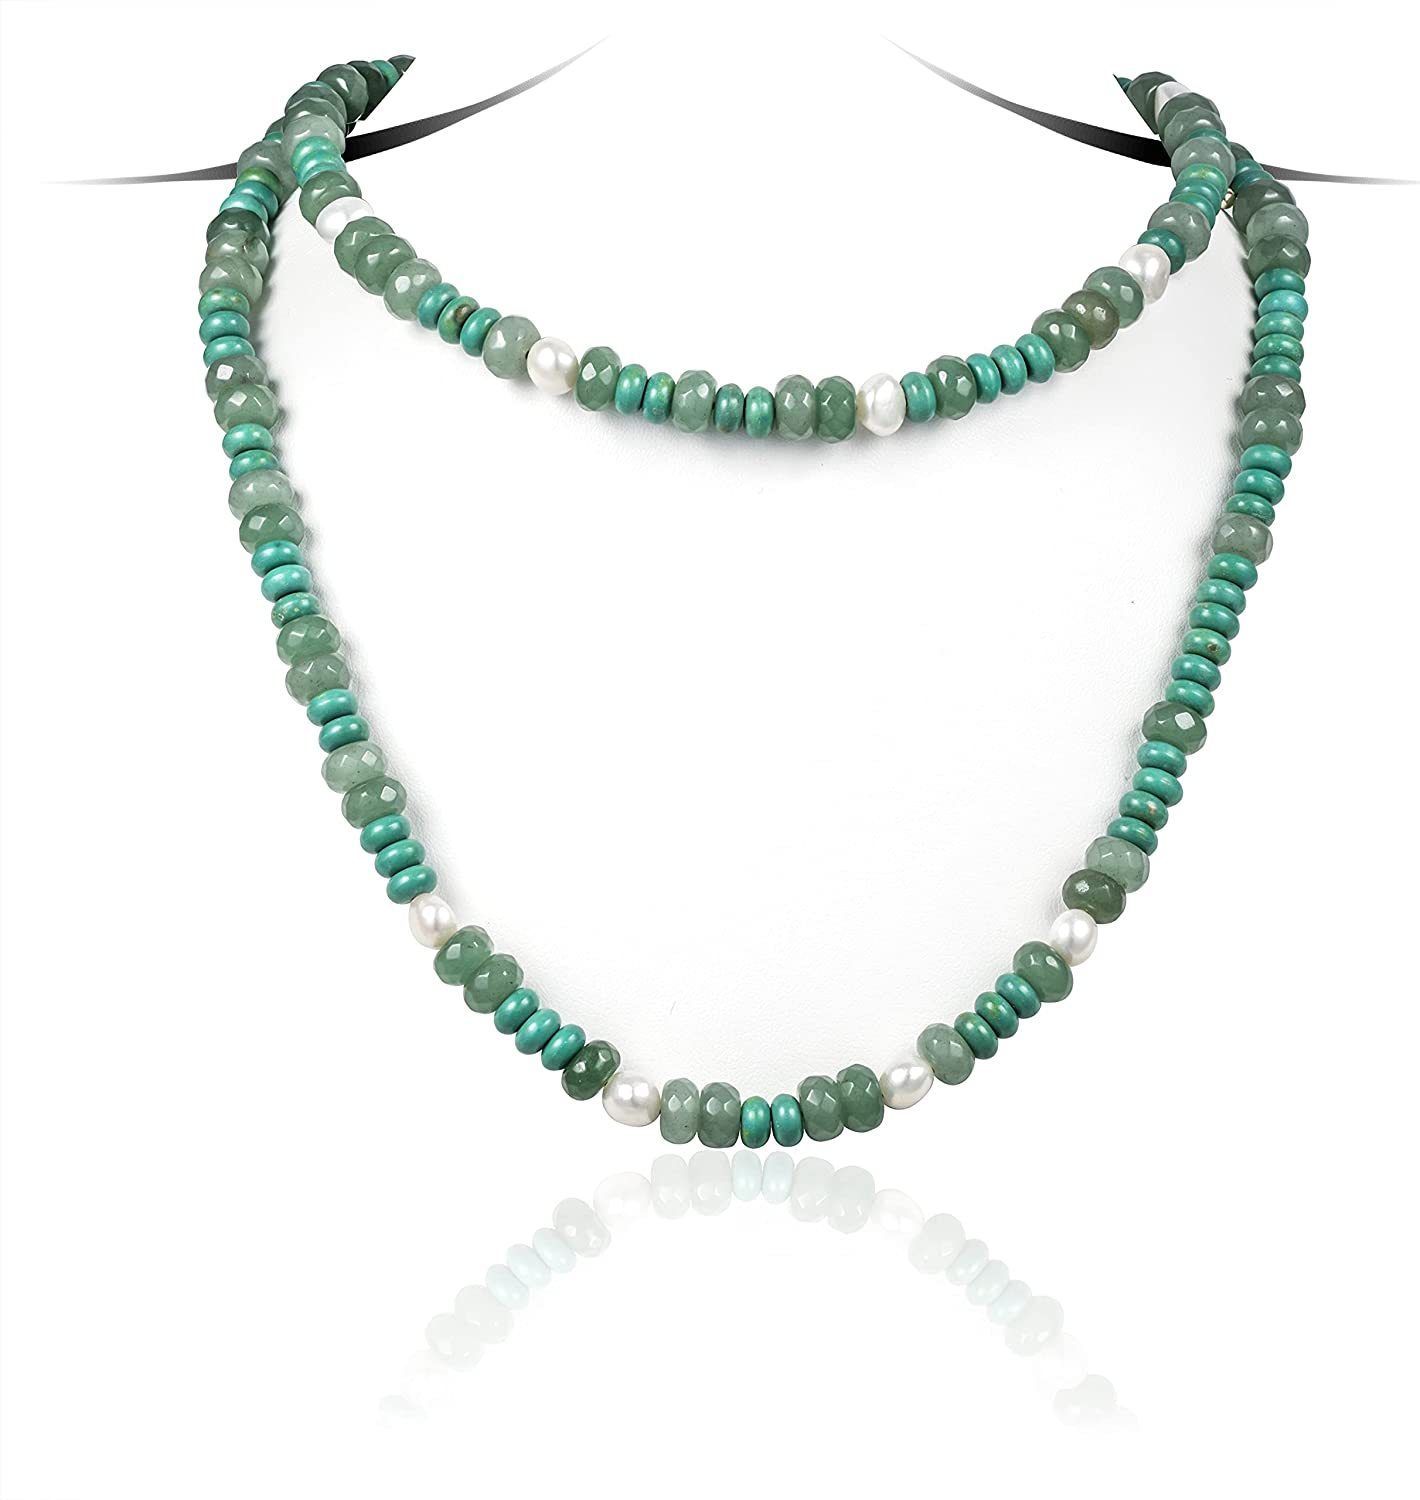 Cowlyn Double Layer Necklace Long Turquoise Pearl Beaded Synthetic Crystal Strand Chain Handmade Jewelry for Women Girls